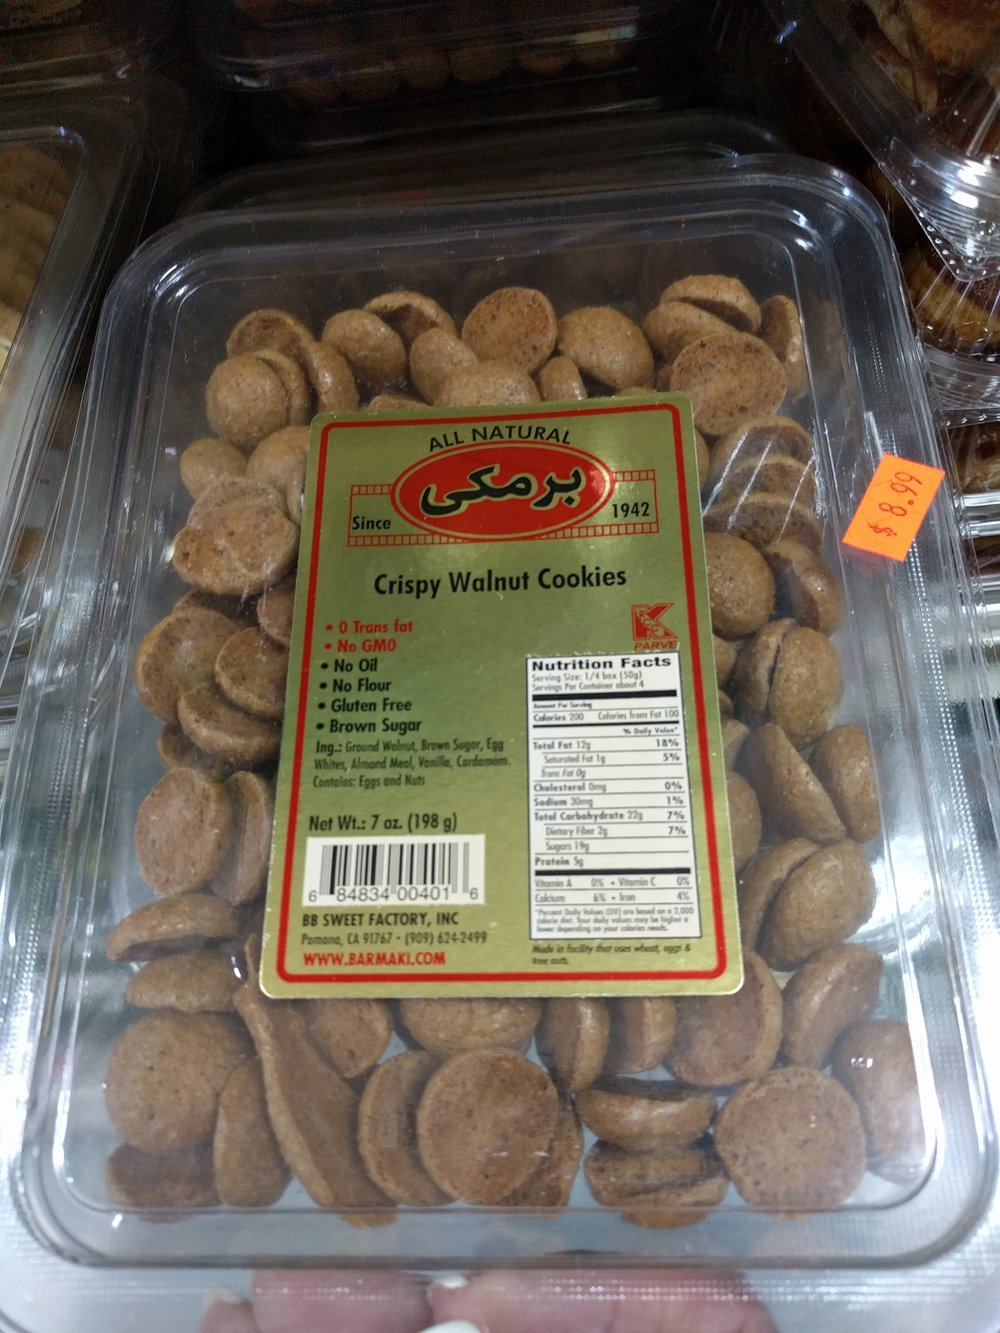 crispy-walnut-cookies-Pak-Halal-International-Foods-12259-W-87th-St-Pkwy-Lenexa-KS-66215.jpg